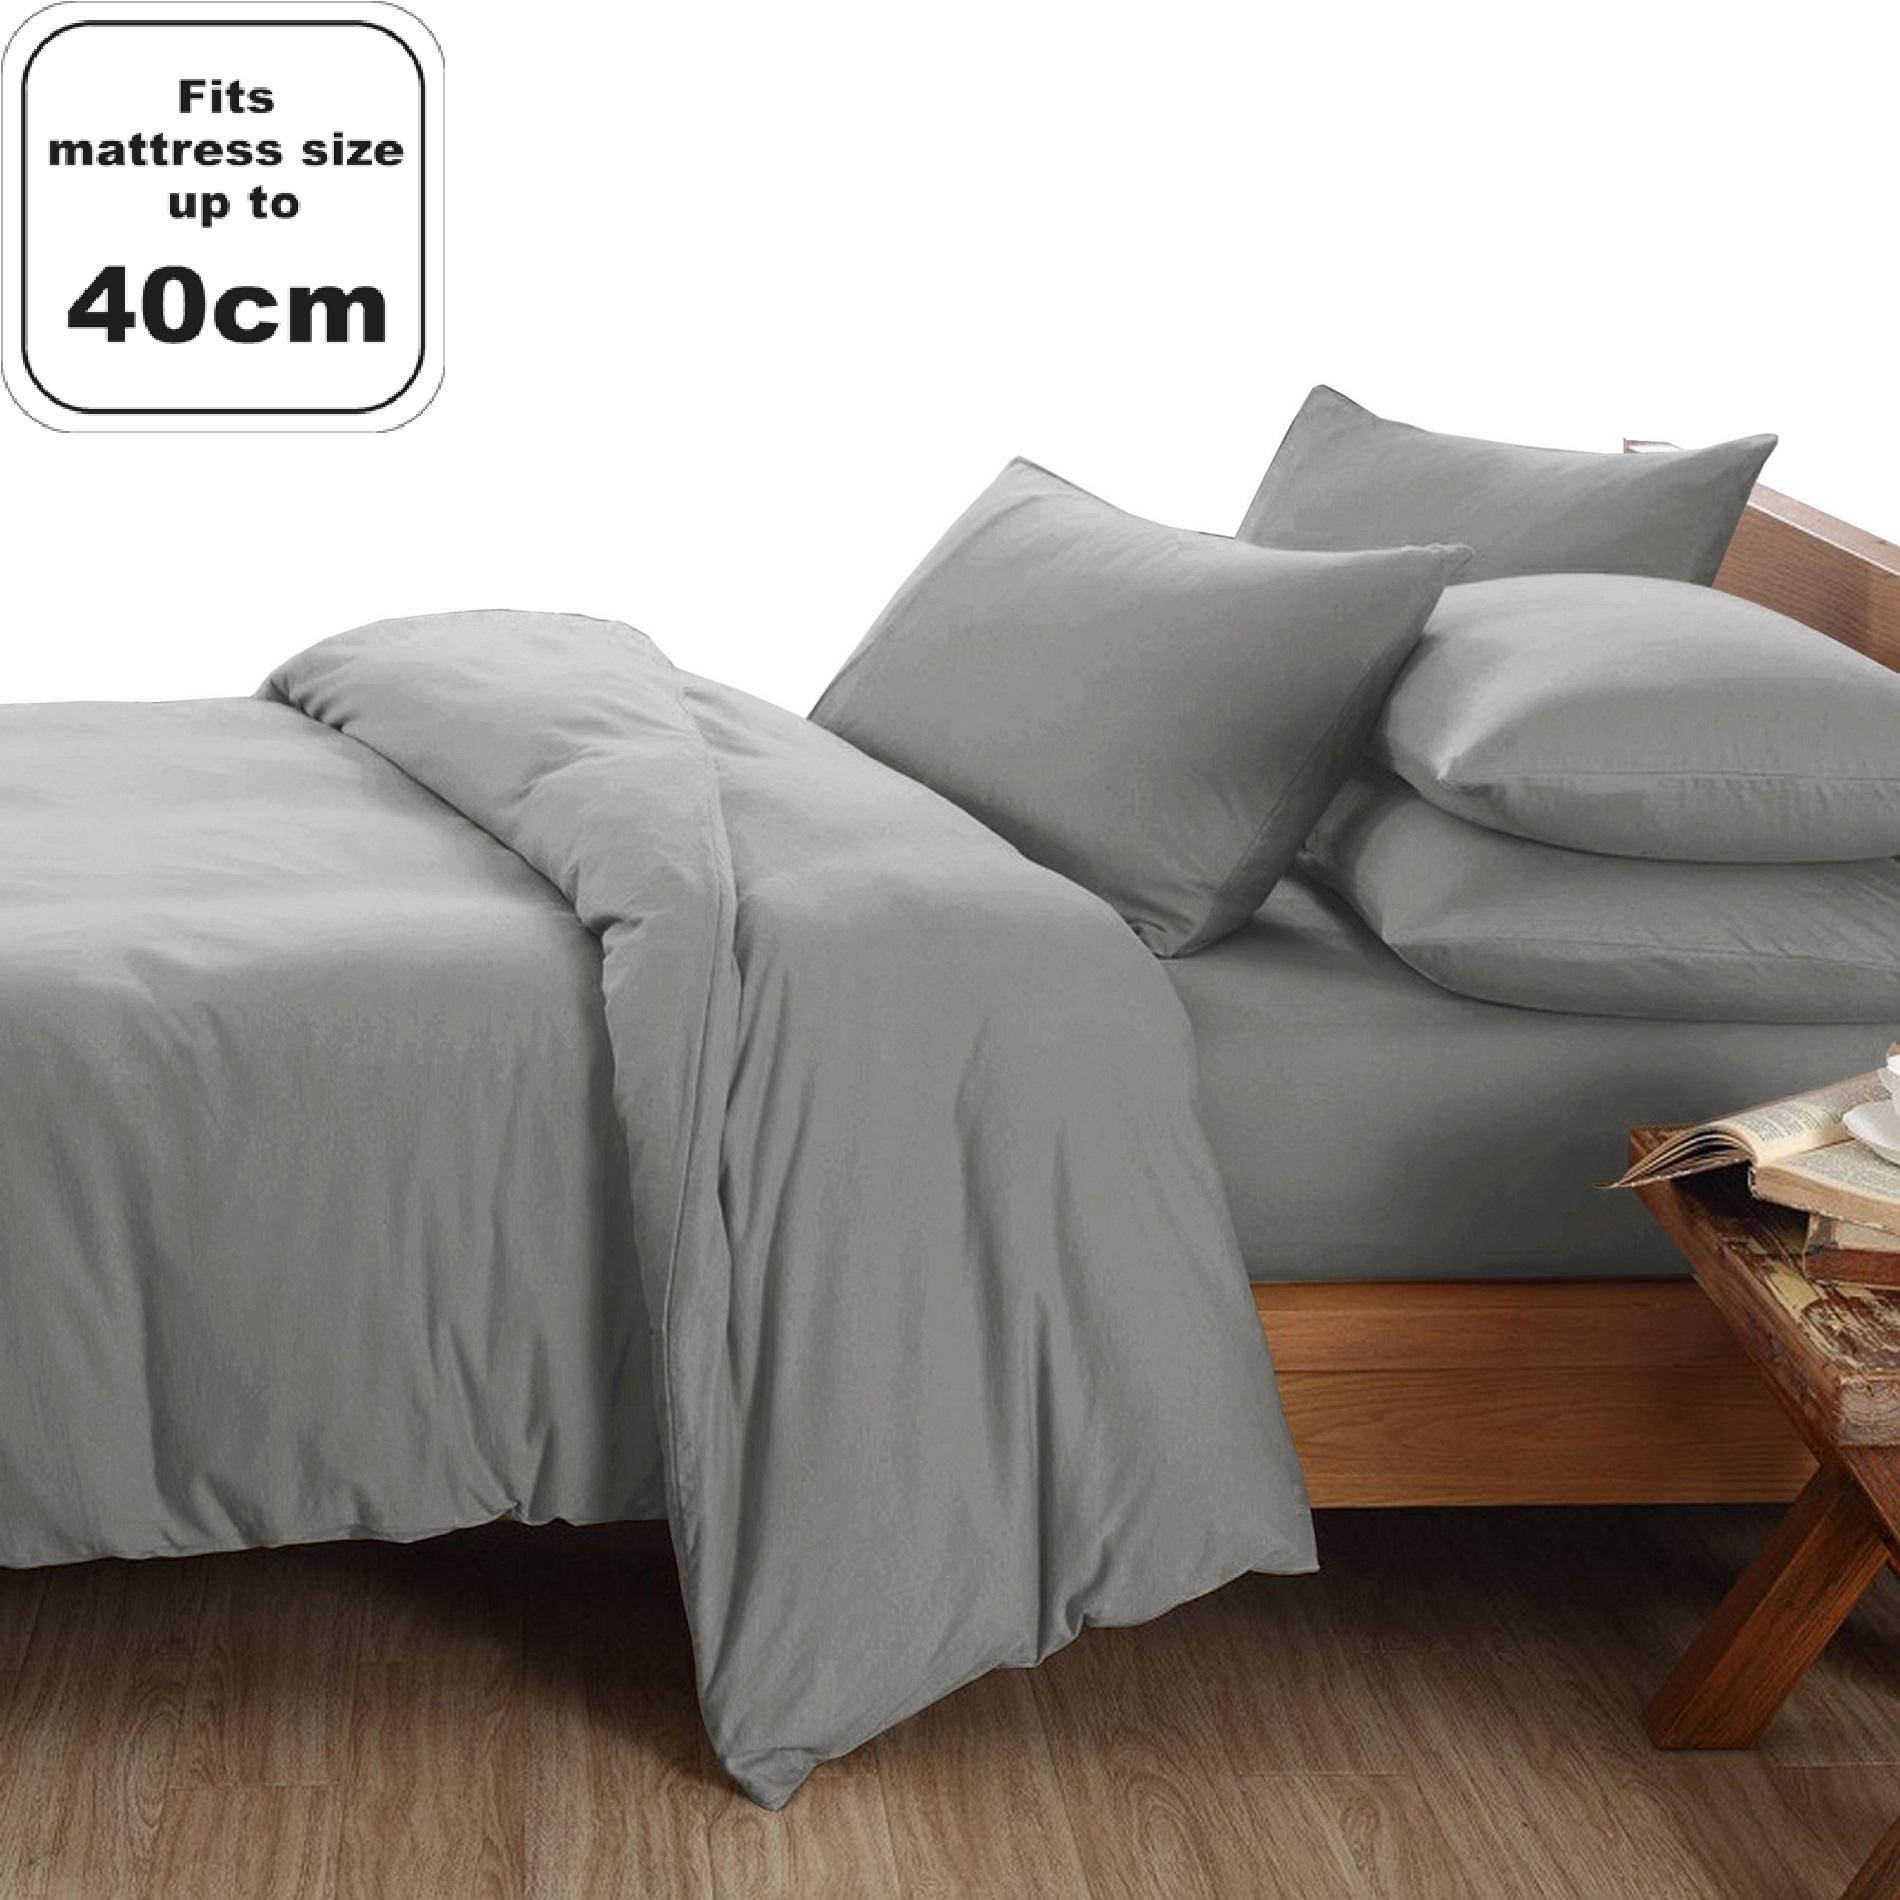 Essina Candies 100% Cotton Fitted Bedsheet set with Quilt Cover (40cm-High mattress)